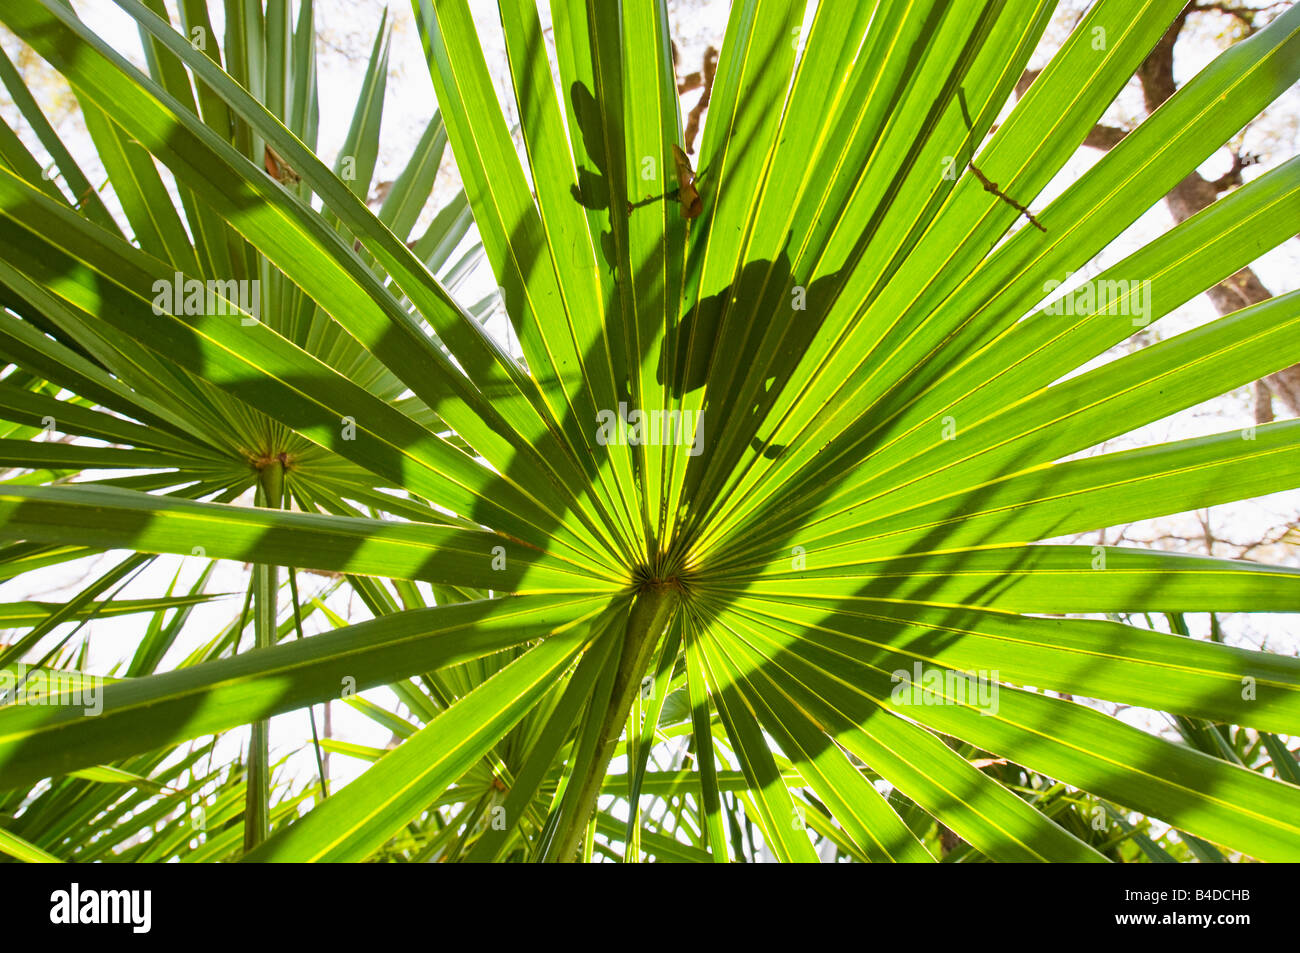 Leaves of the Serenoa repens the saw palmetto a palm like plant that grows in clumps or dense thickets in sandy Stock Photo